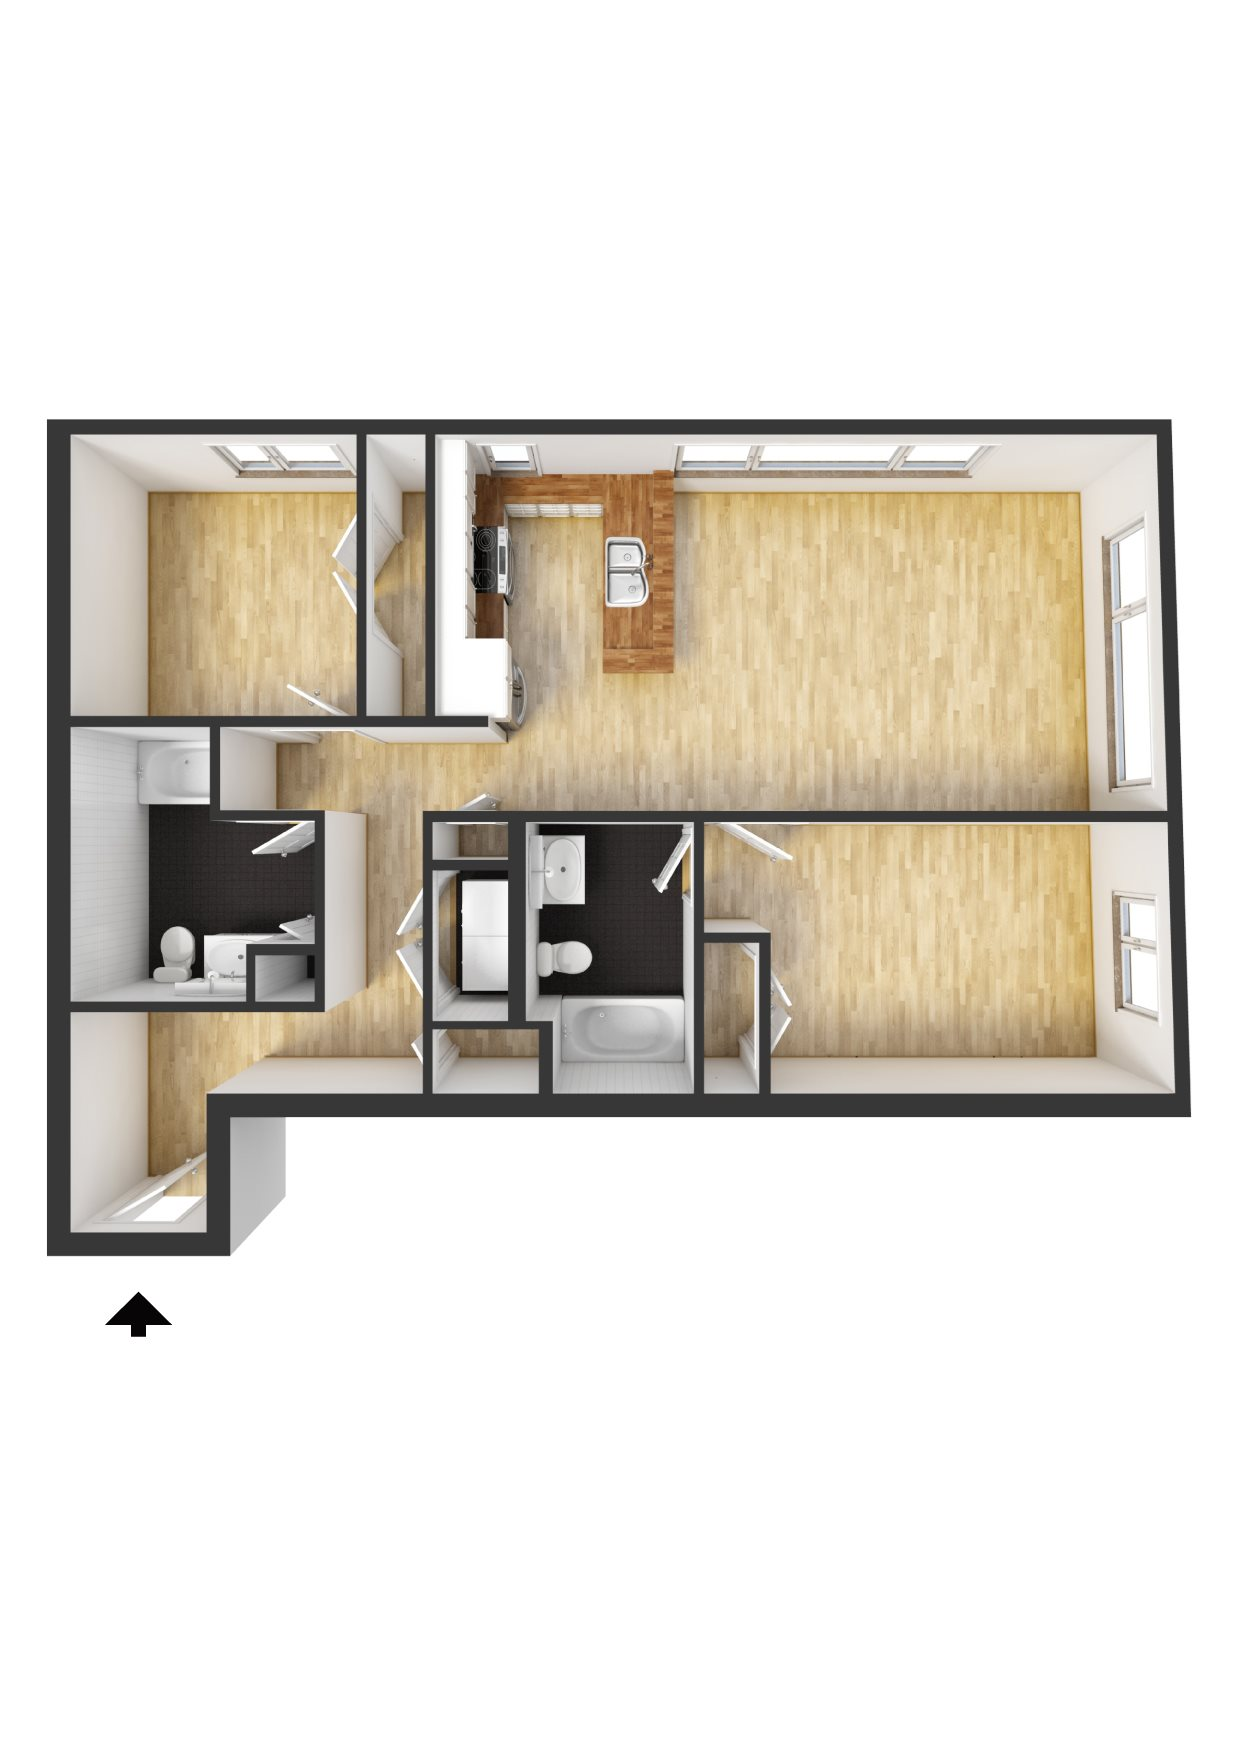 2 Bedroom, 2 Bath B